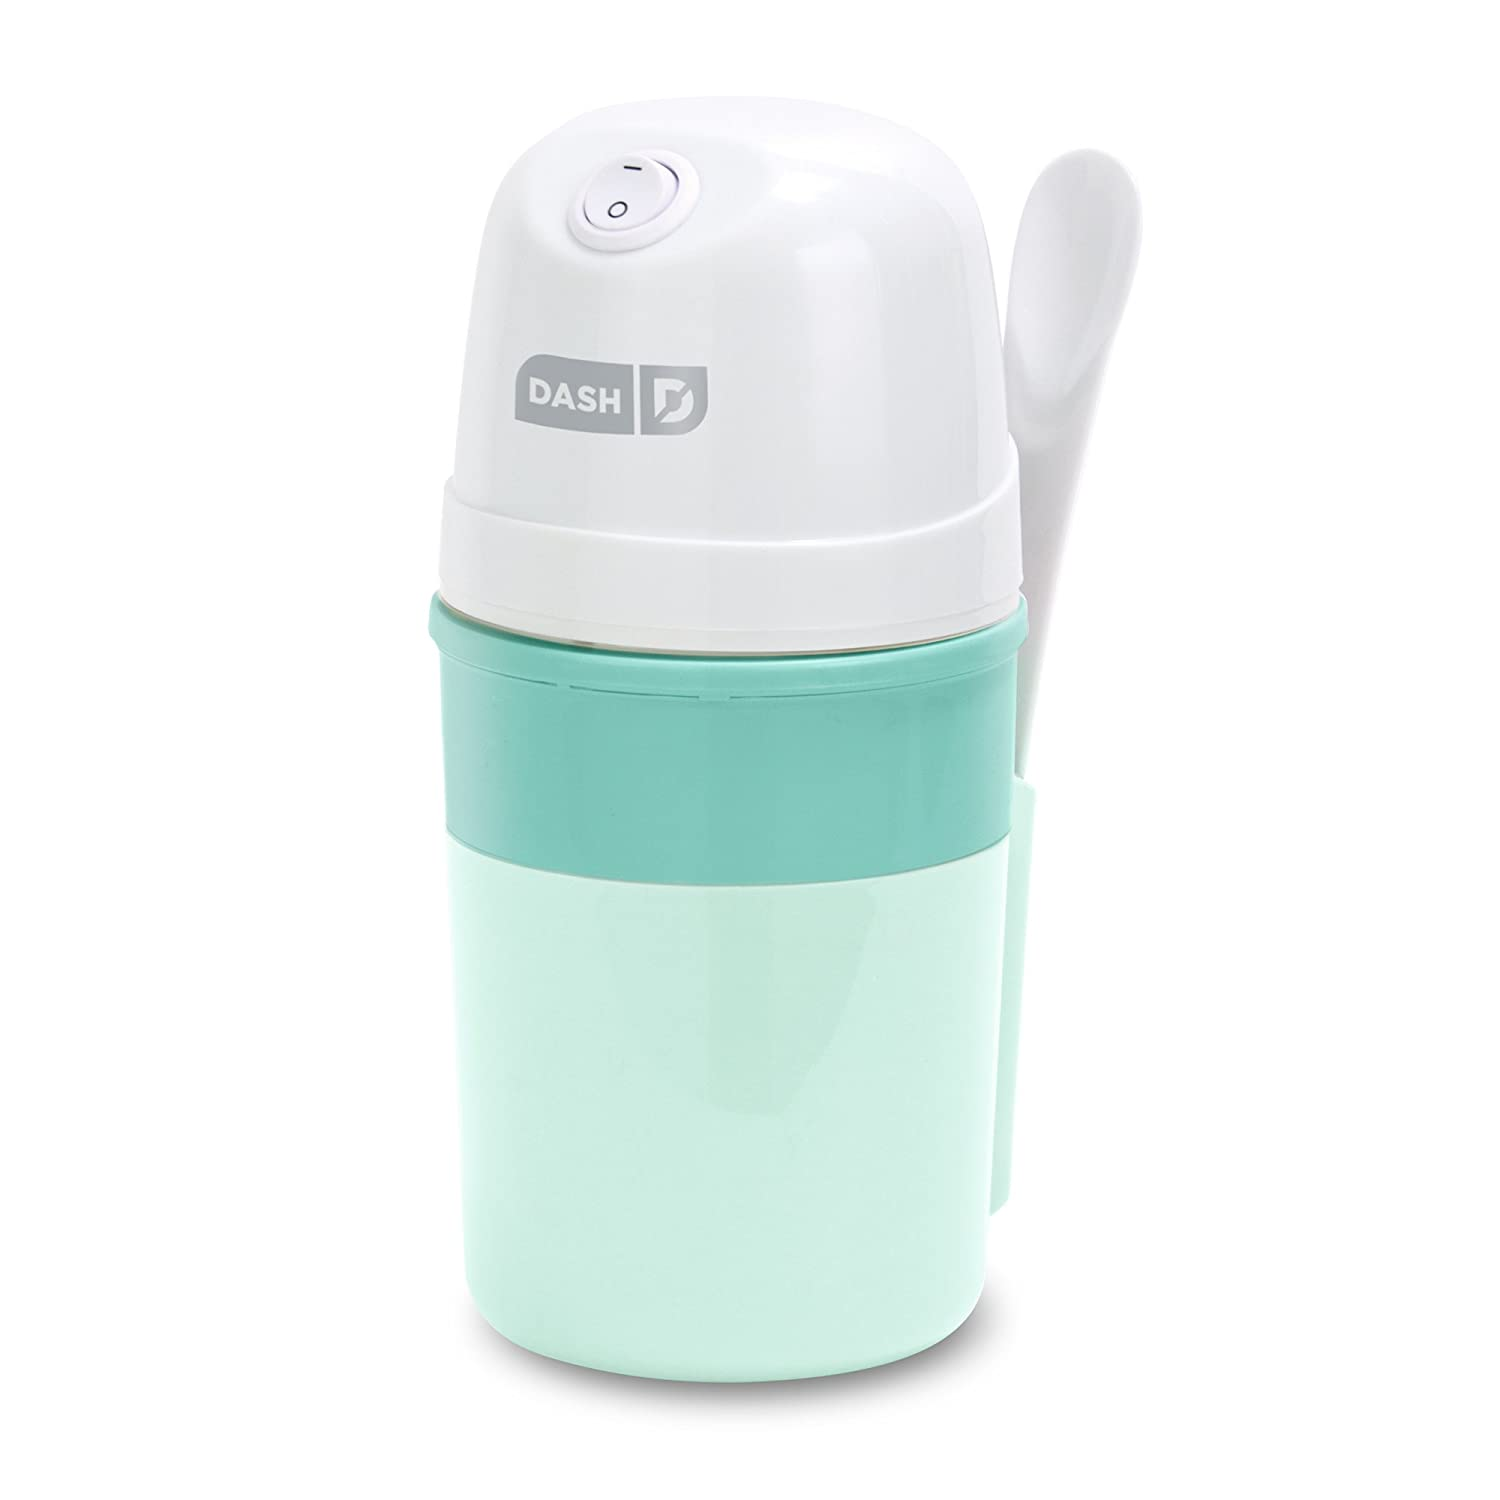 DASH DPIC100GBAQ04 My Pint Ice Cream Maker, Aqua